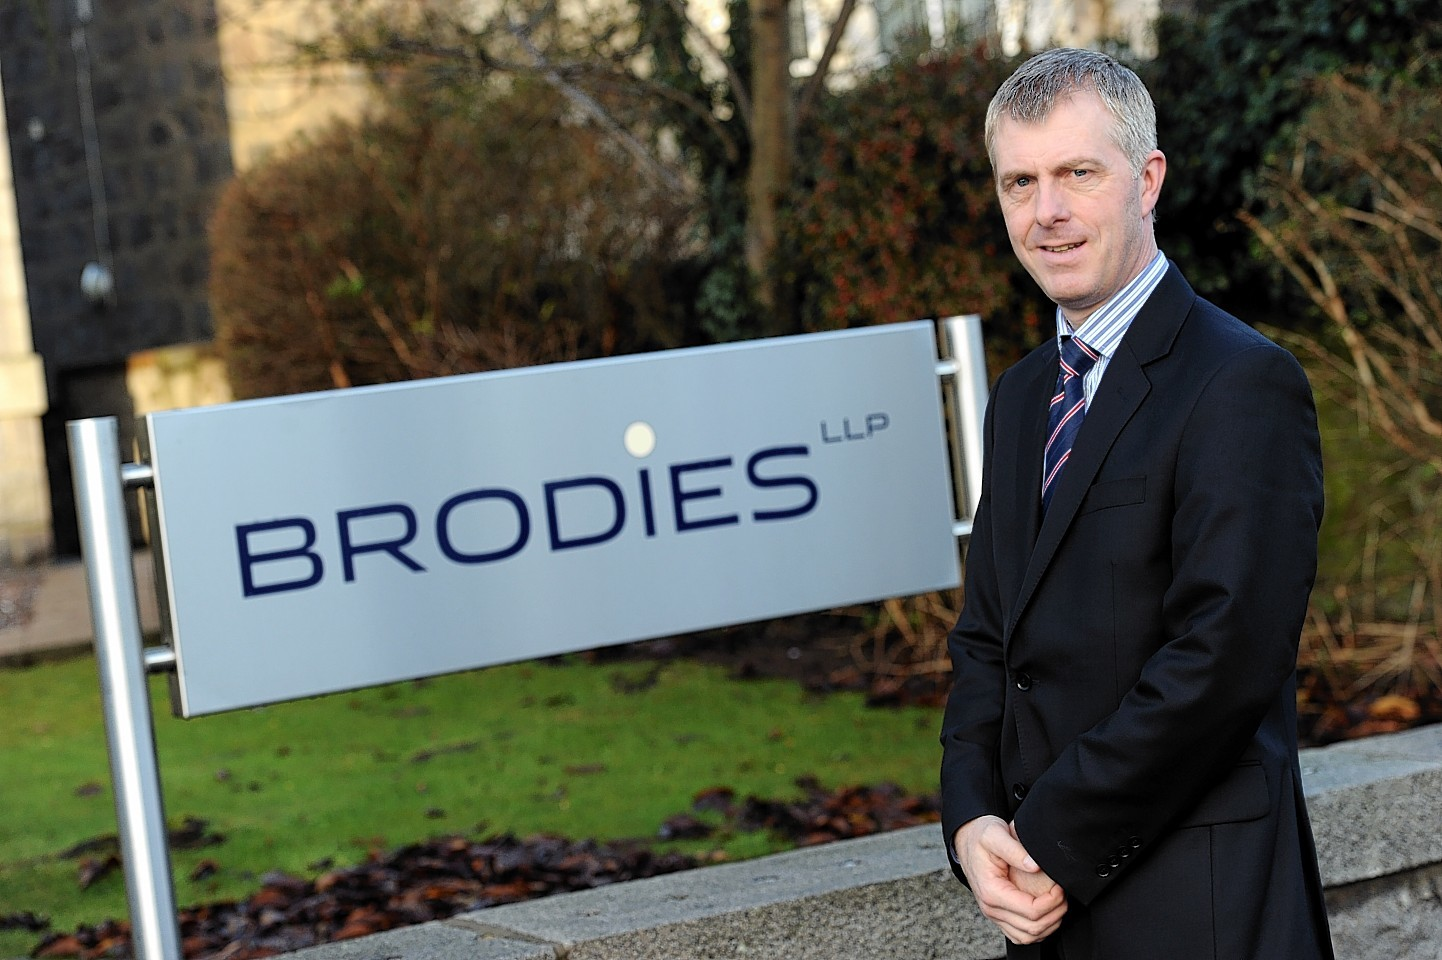 Clive Phillips of Brodies LLP